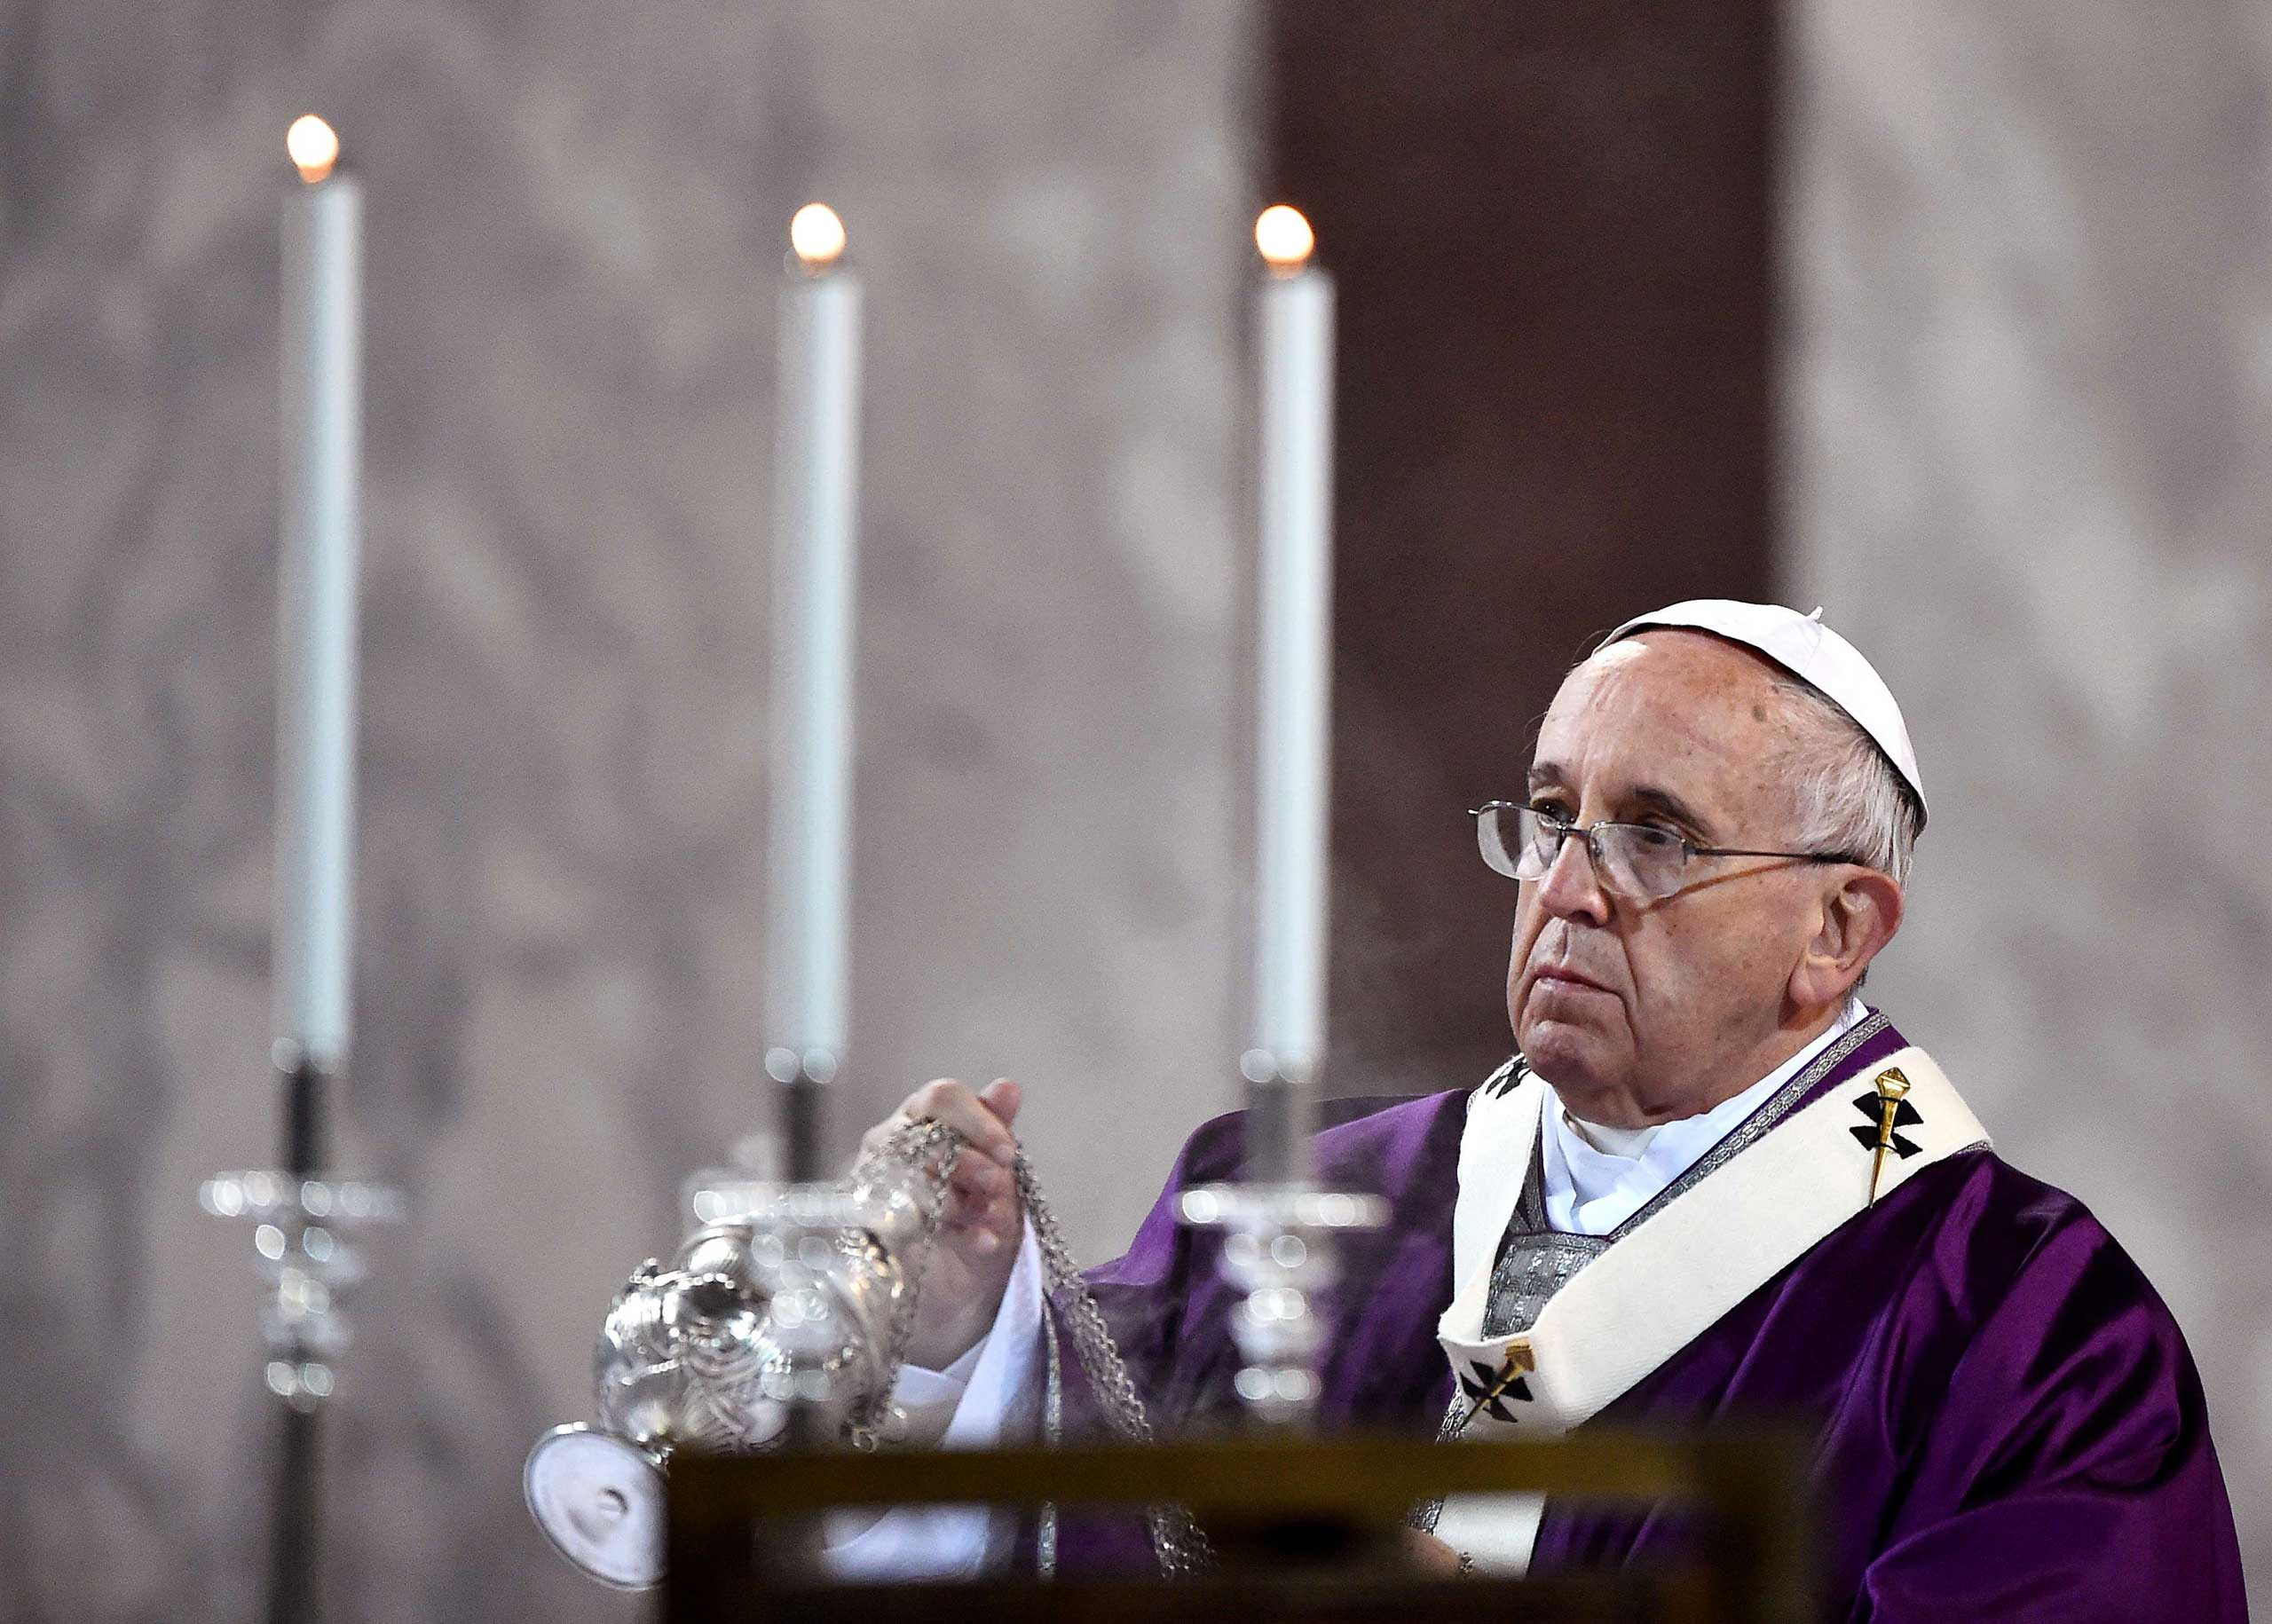 Pope Francis leads the Ash Wednesday mass on Feb. 18, 2015 in Rome.